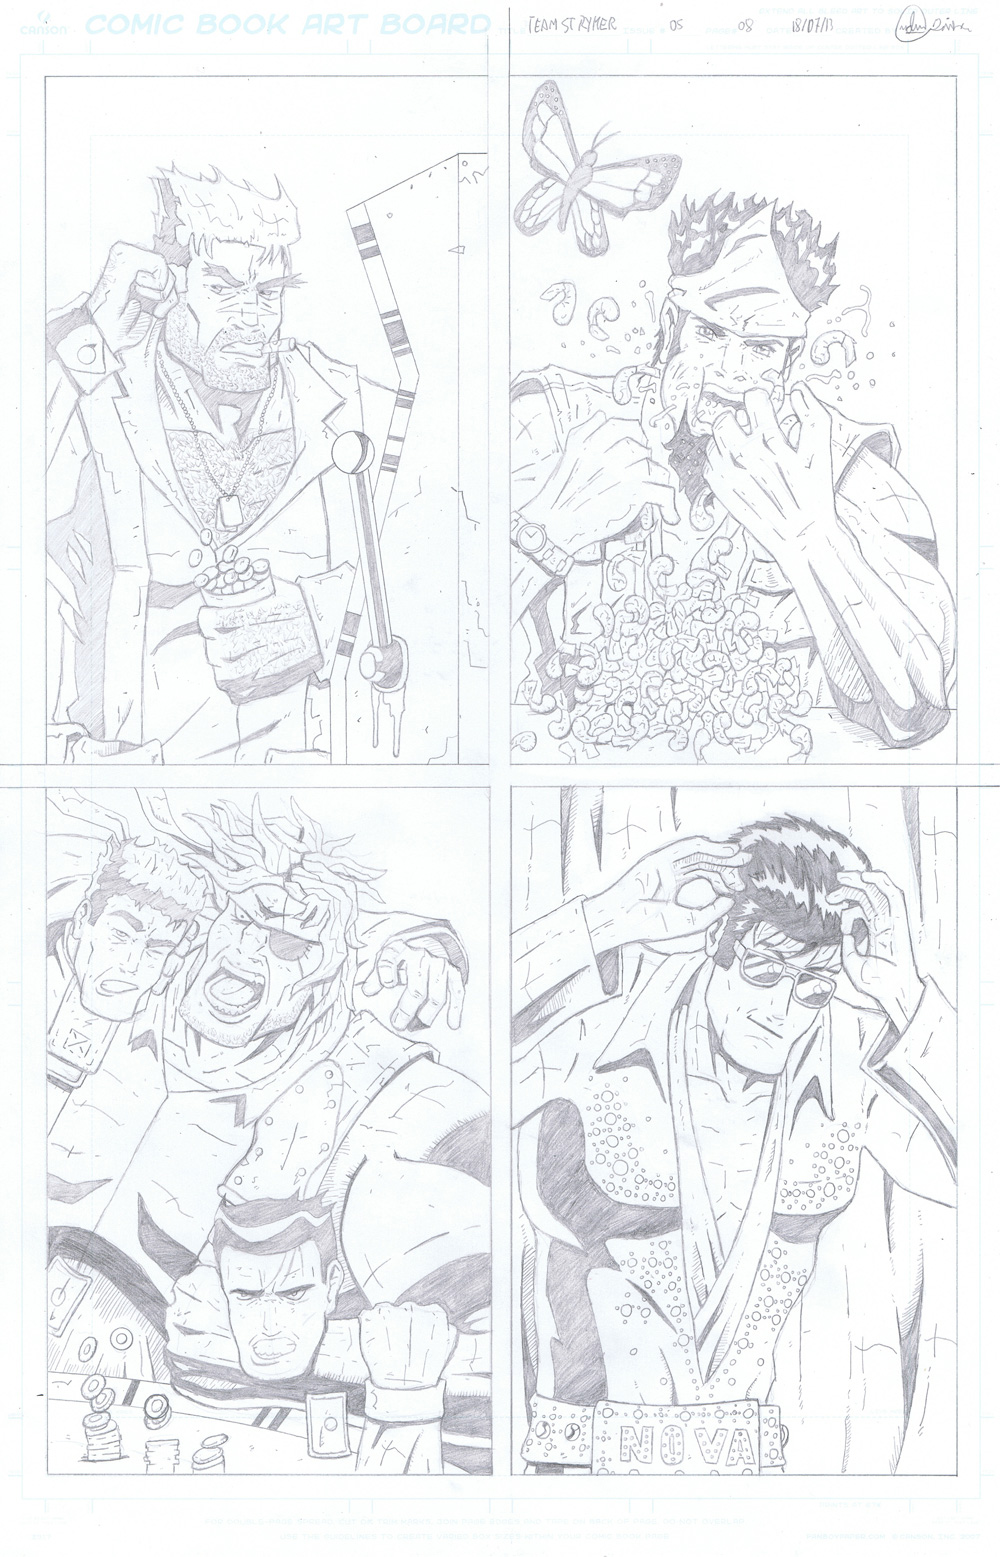 MISSION 005: PAGE 08 PENCIL